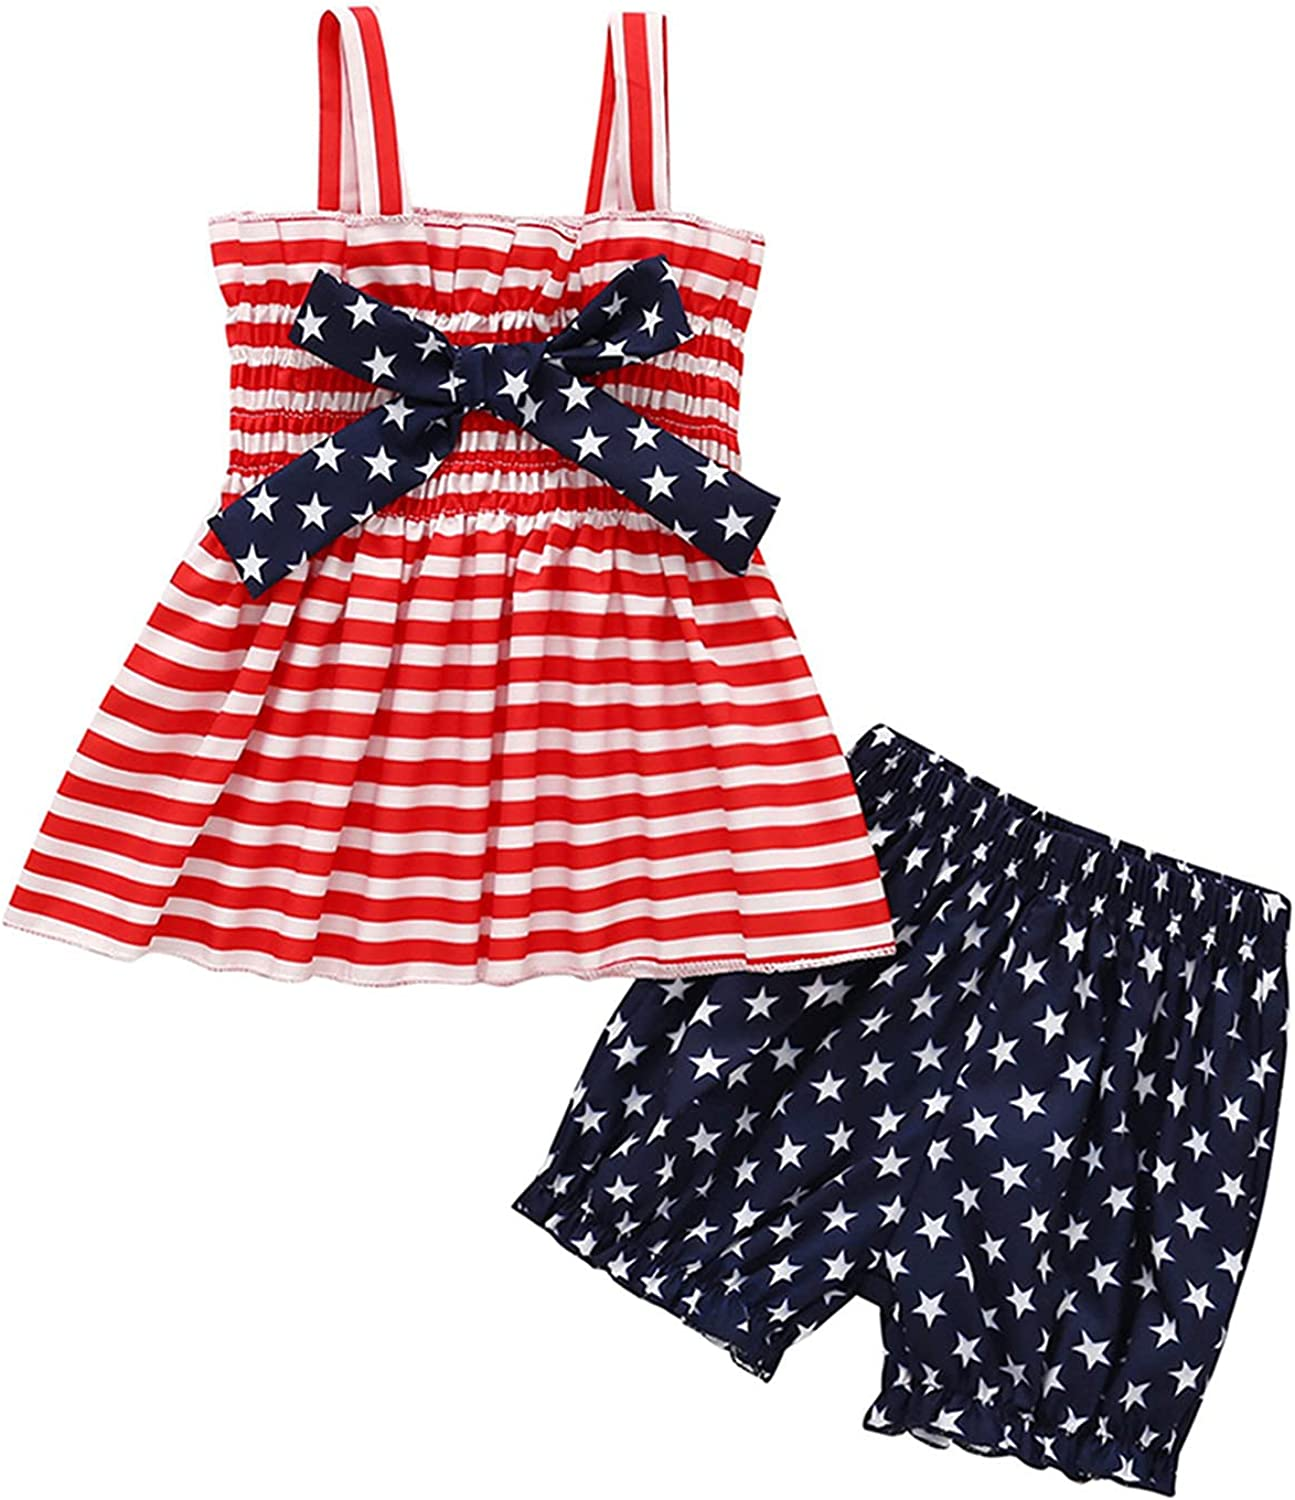 2pcs 4th of July for Baby Girl Outfits Striped Bow top and Star Shorts Set Pleated Shorts Set Sling top+ Shorts Set